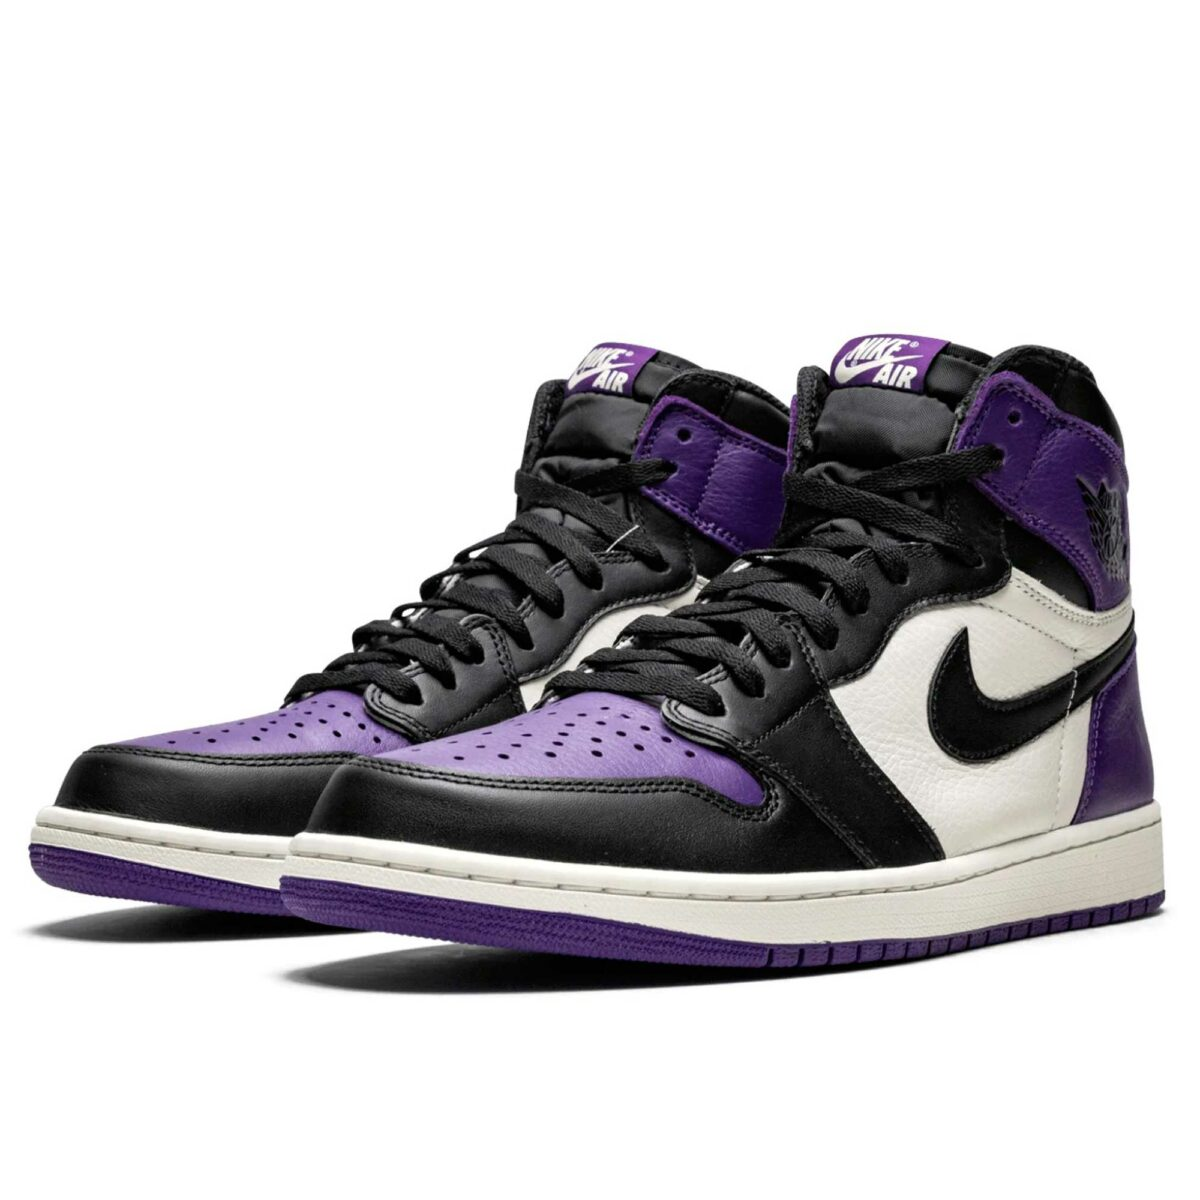 nike air jordan 1 retro hight OG court purple 555088_501 купить